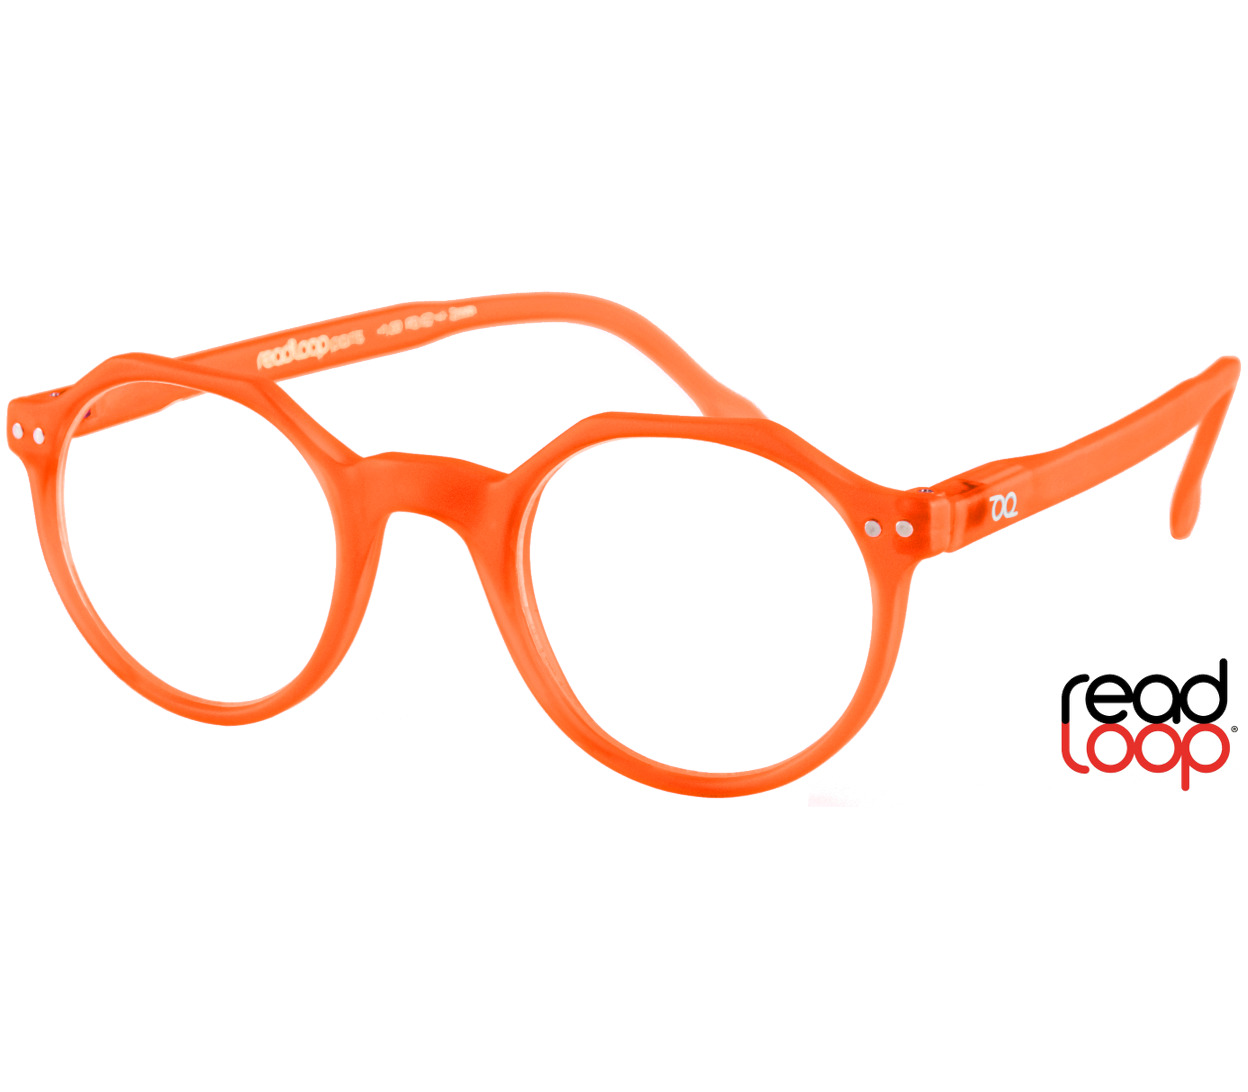 Main Image (Angle) - Hurricane (Orange) Retro Reading Glasses